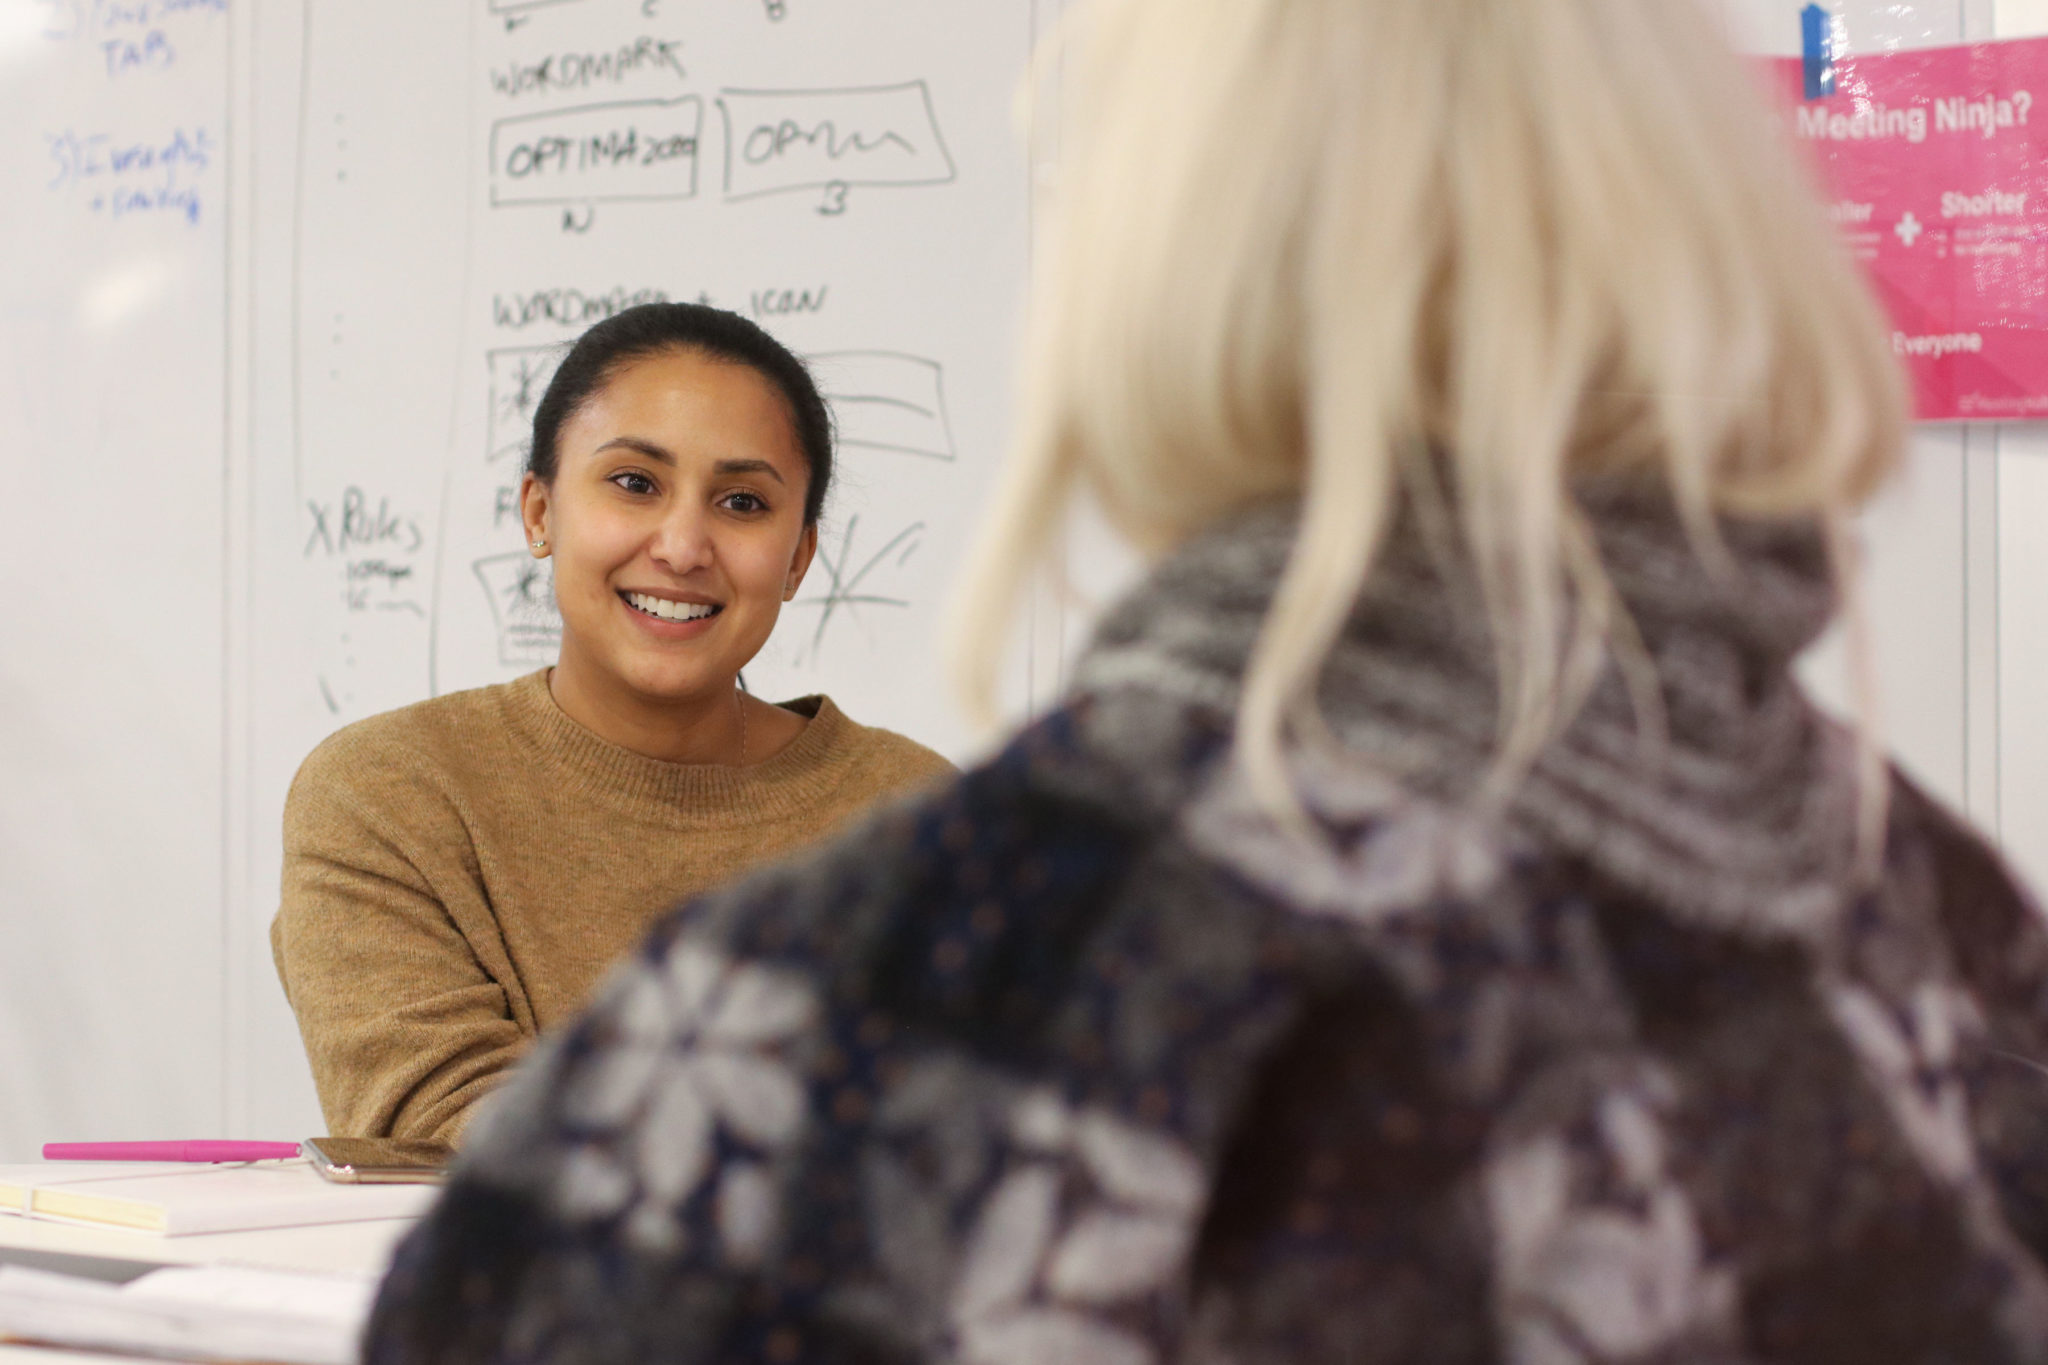 HR leader discusses interview topics with job candidate